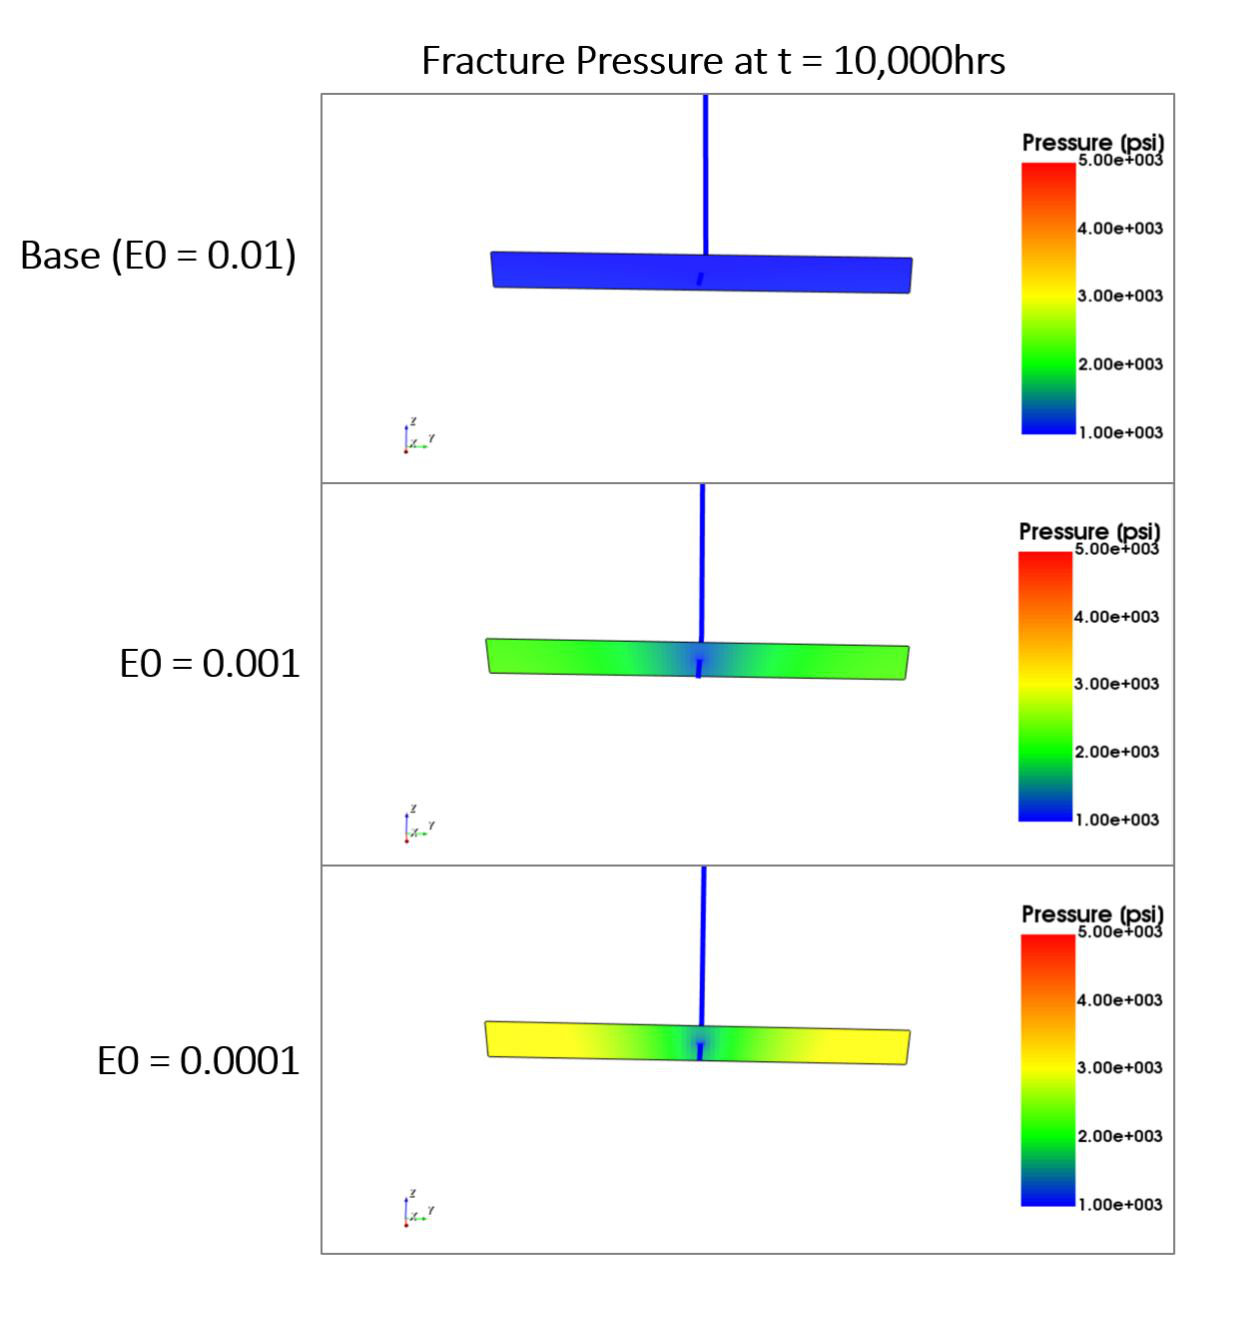 In the cases with finite conductivity, we see a pressure gradient within the fracture, the degree of which scales with the E0 value.